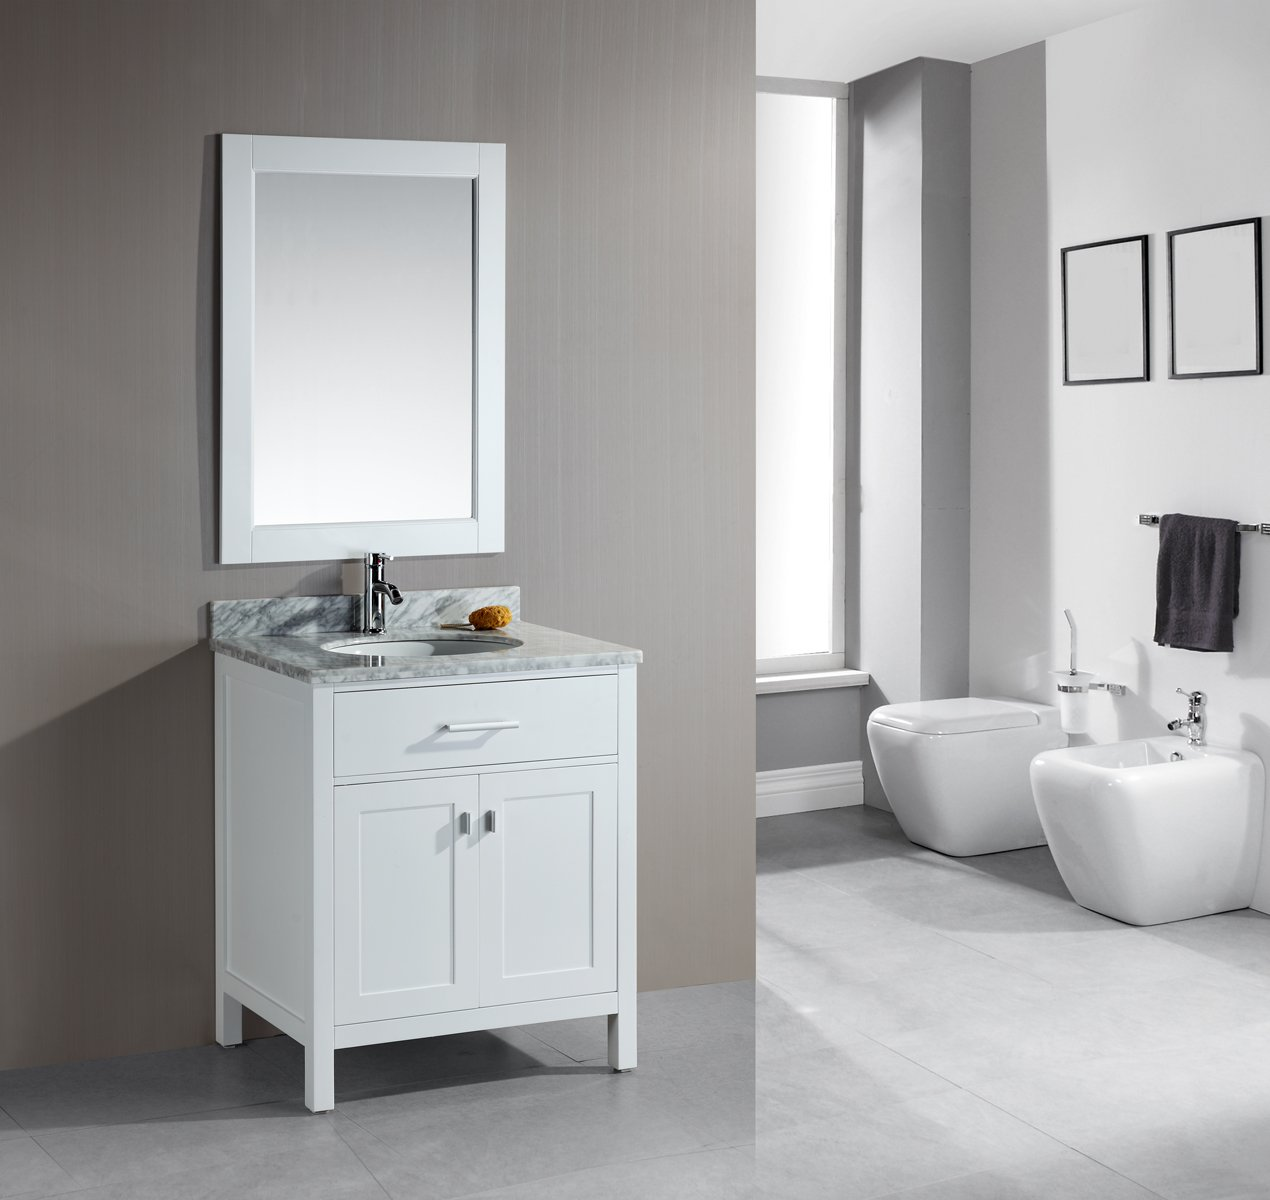 white sink delightful single bathroom vanity